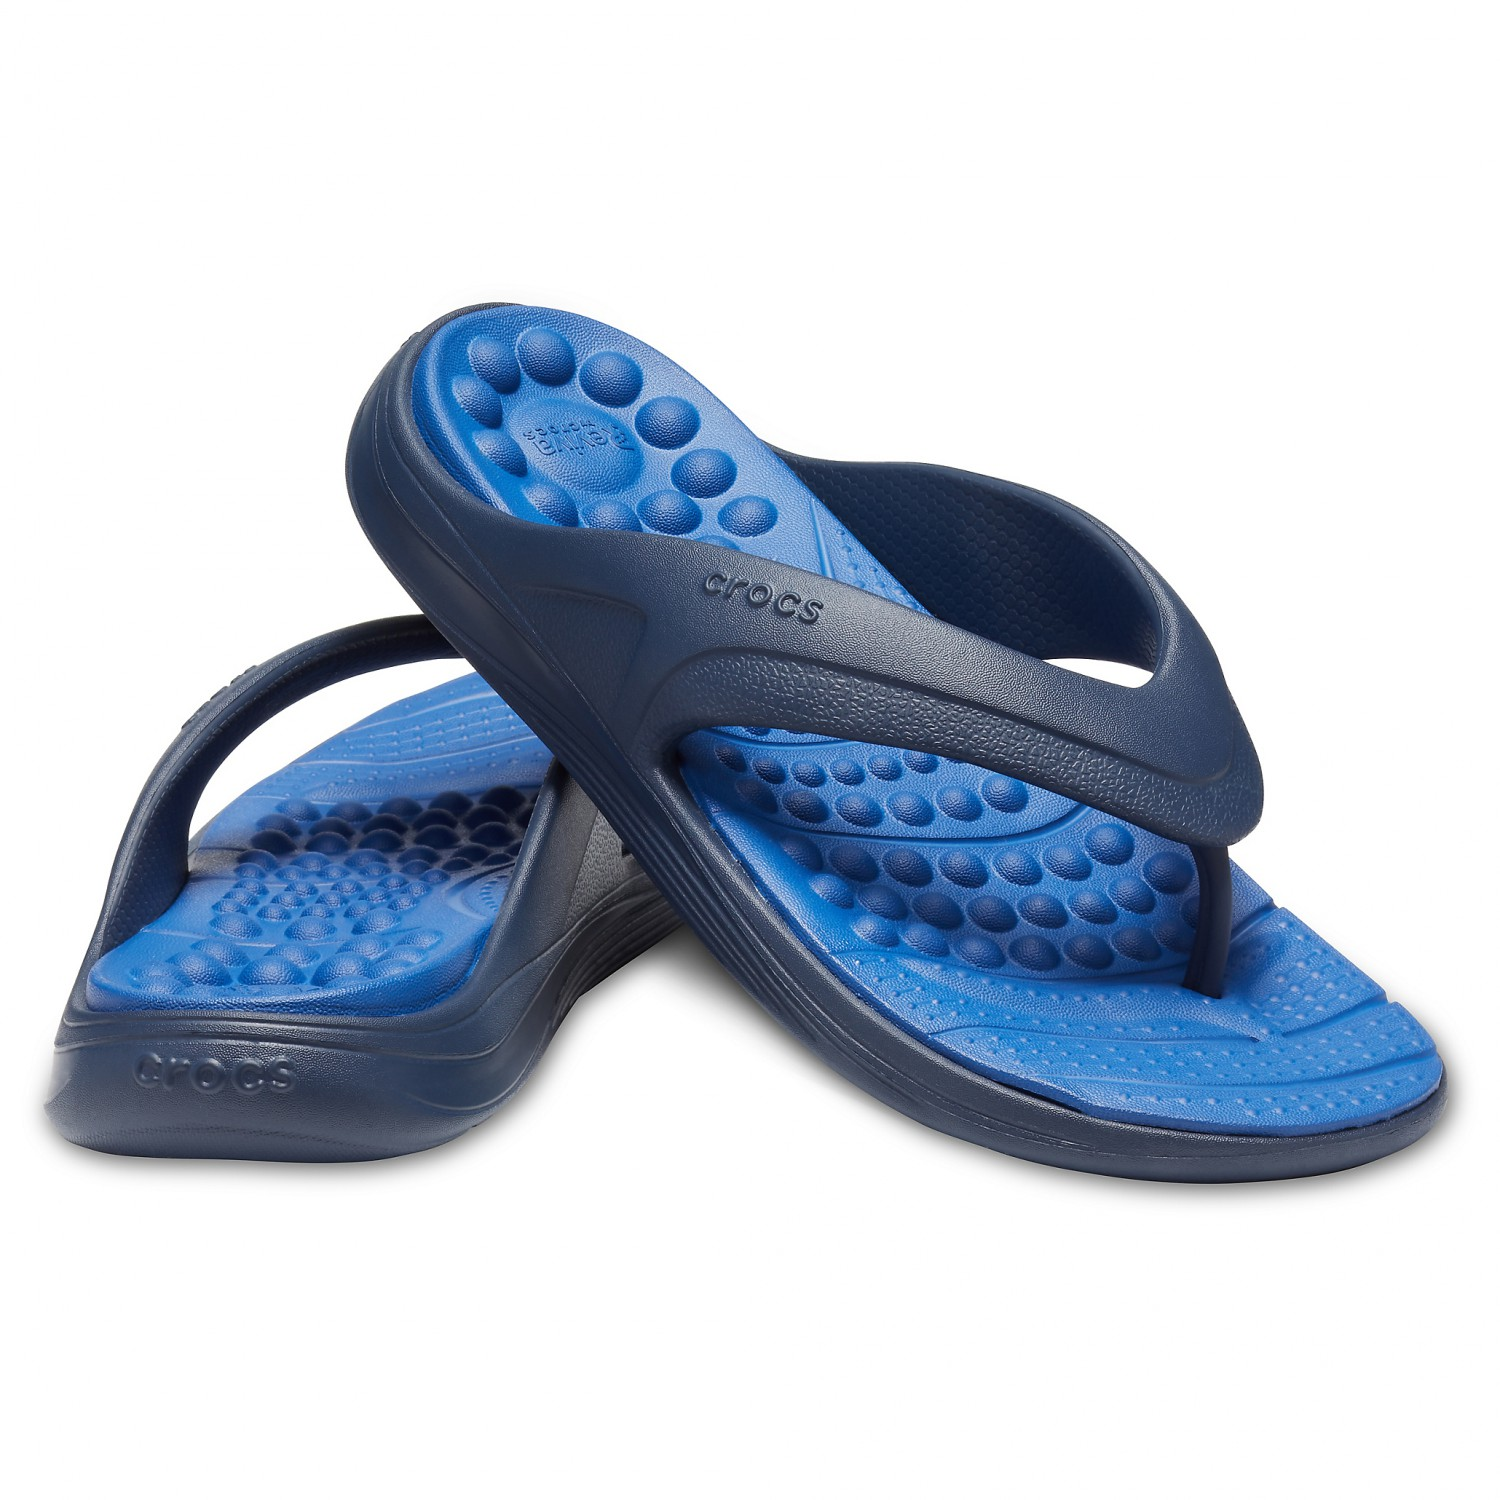 bb44ee626f8c ... Crocs - Reviva Flip - Sandals ...